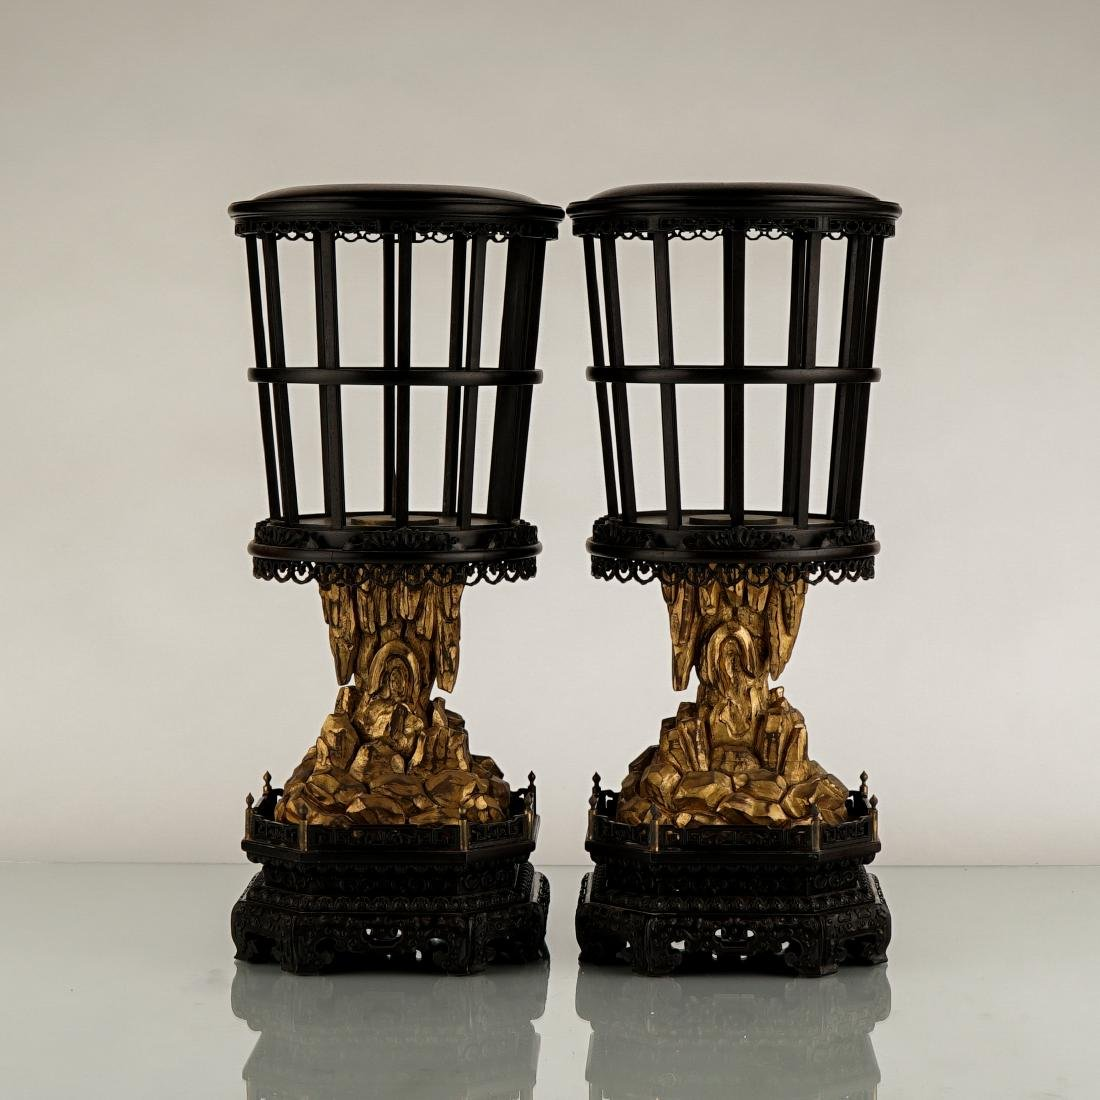 PAIR OF ZITAN CANDLE STANDS